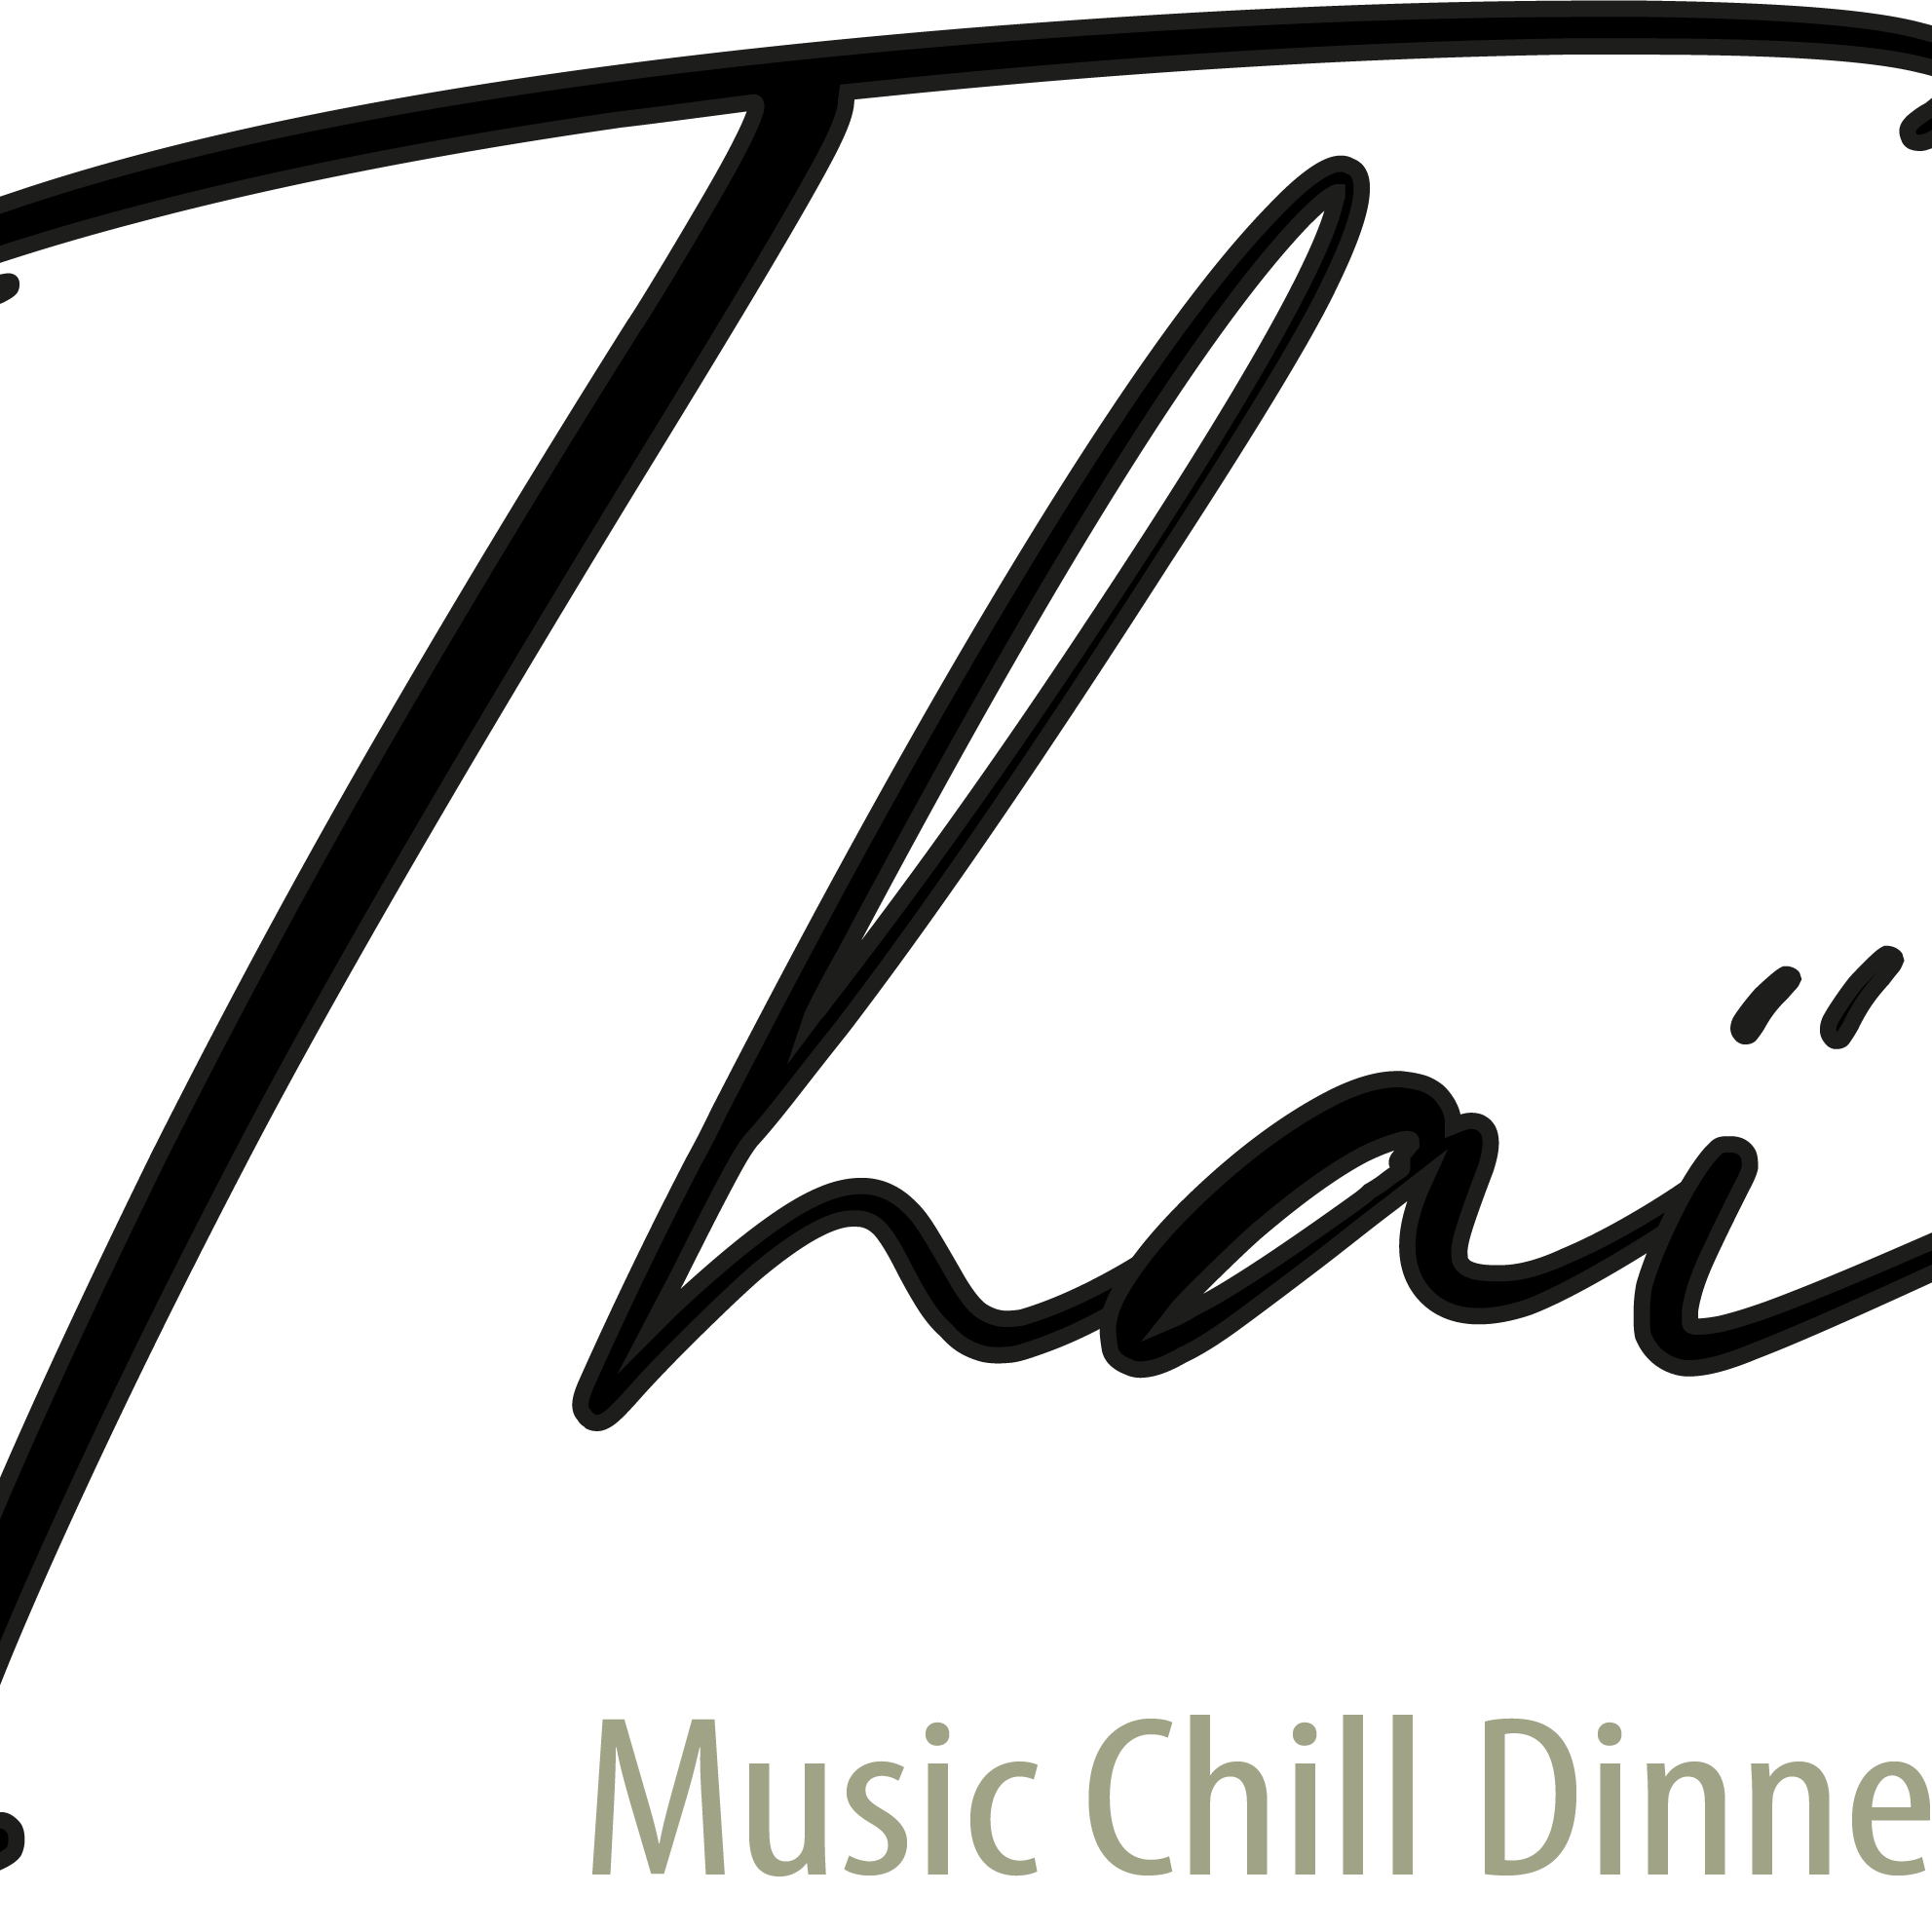 Thaï Music Chill Dinner